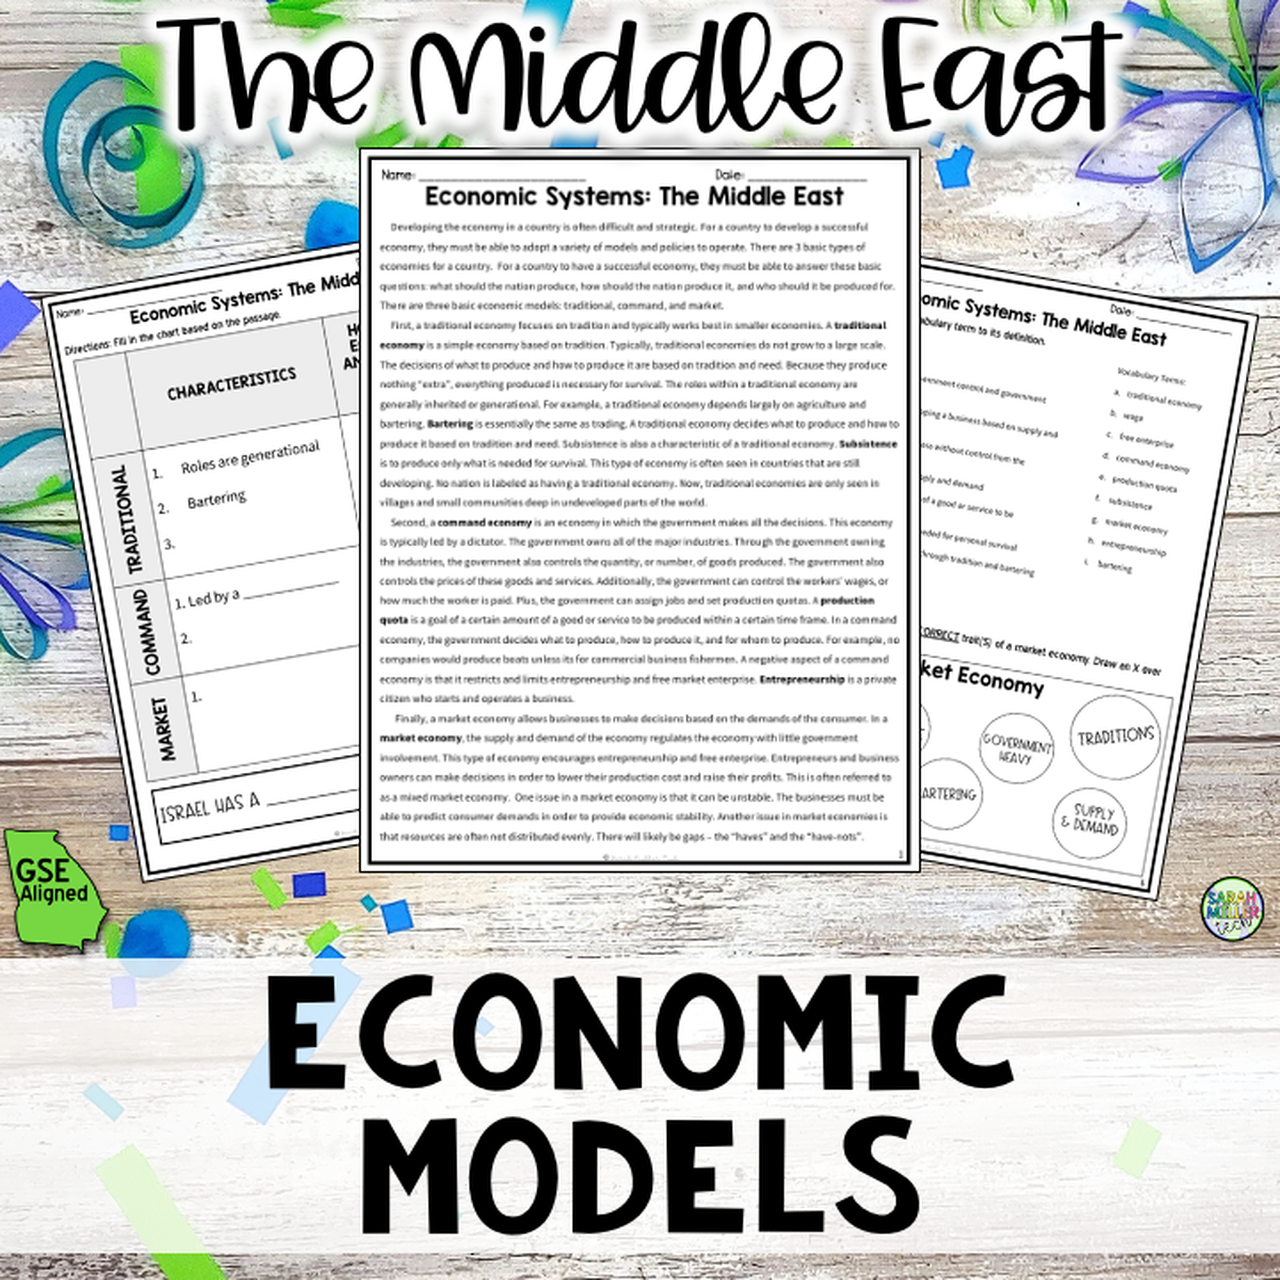 Economic Models In Southwest Asia Ss7e4a